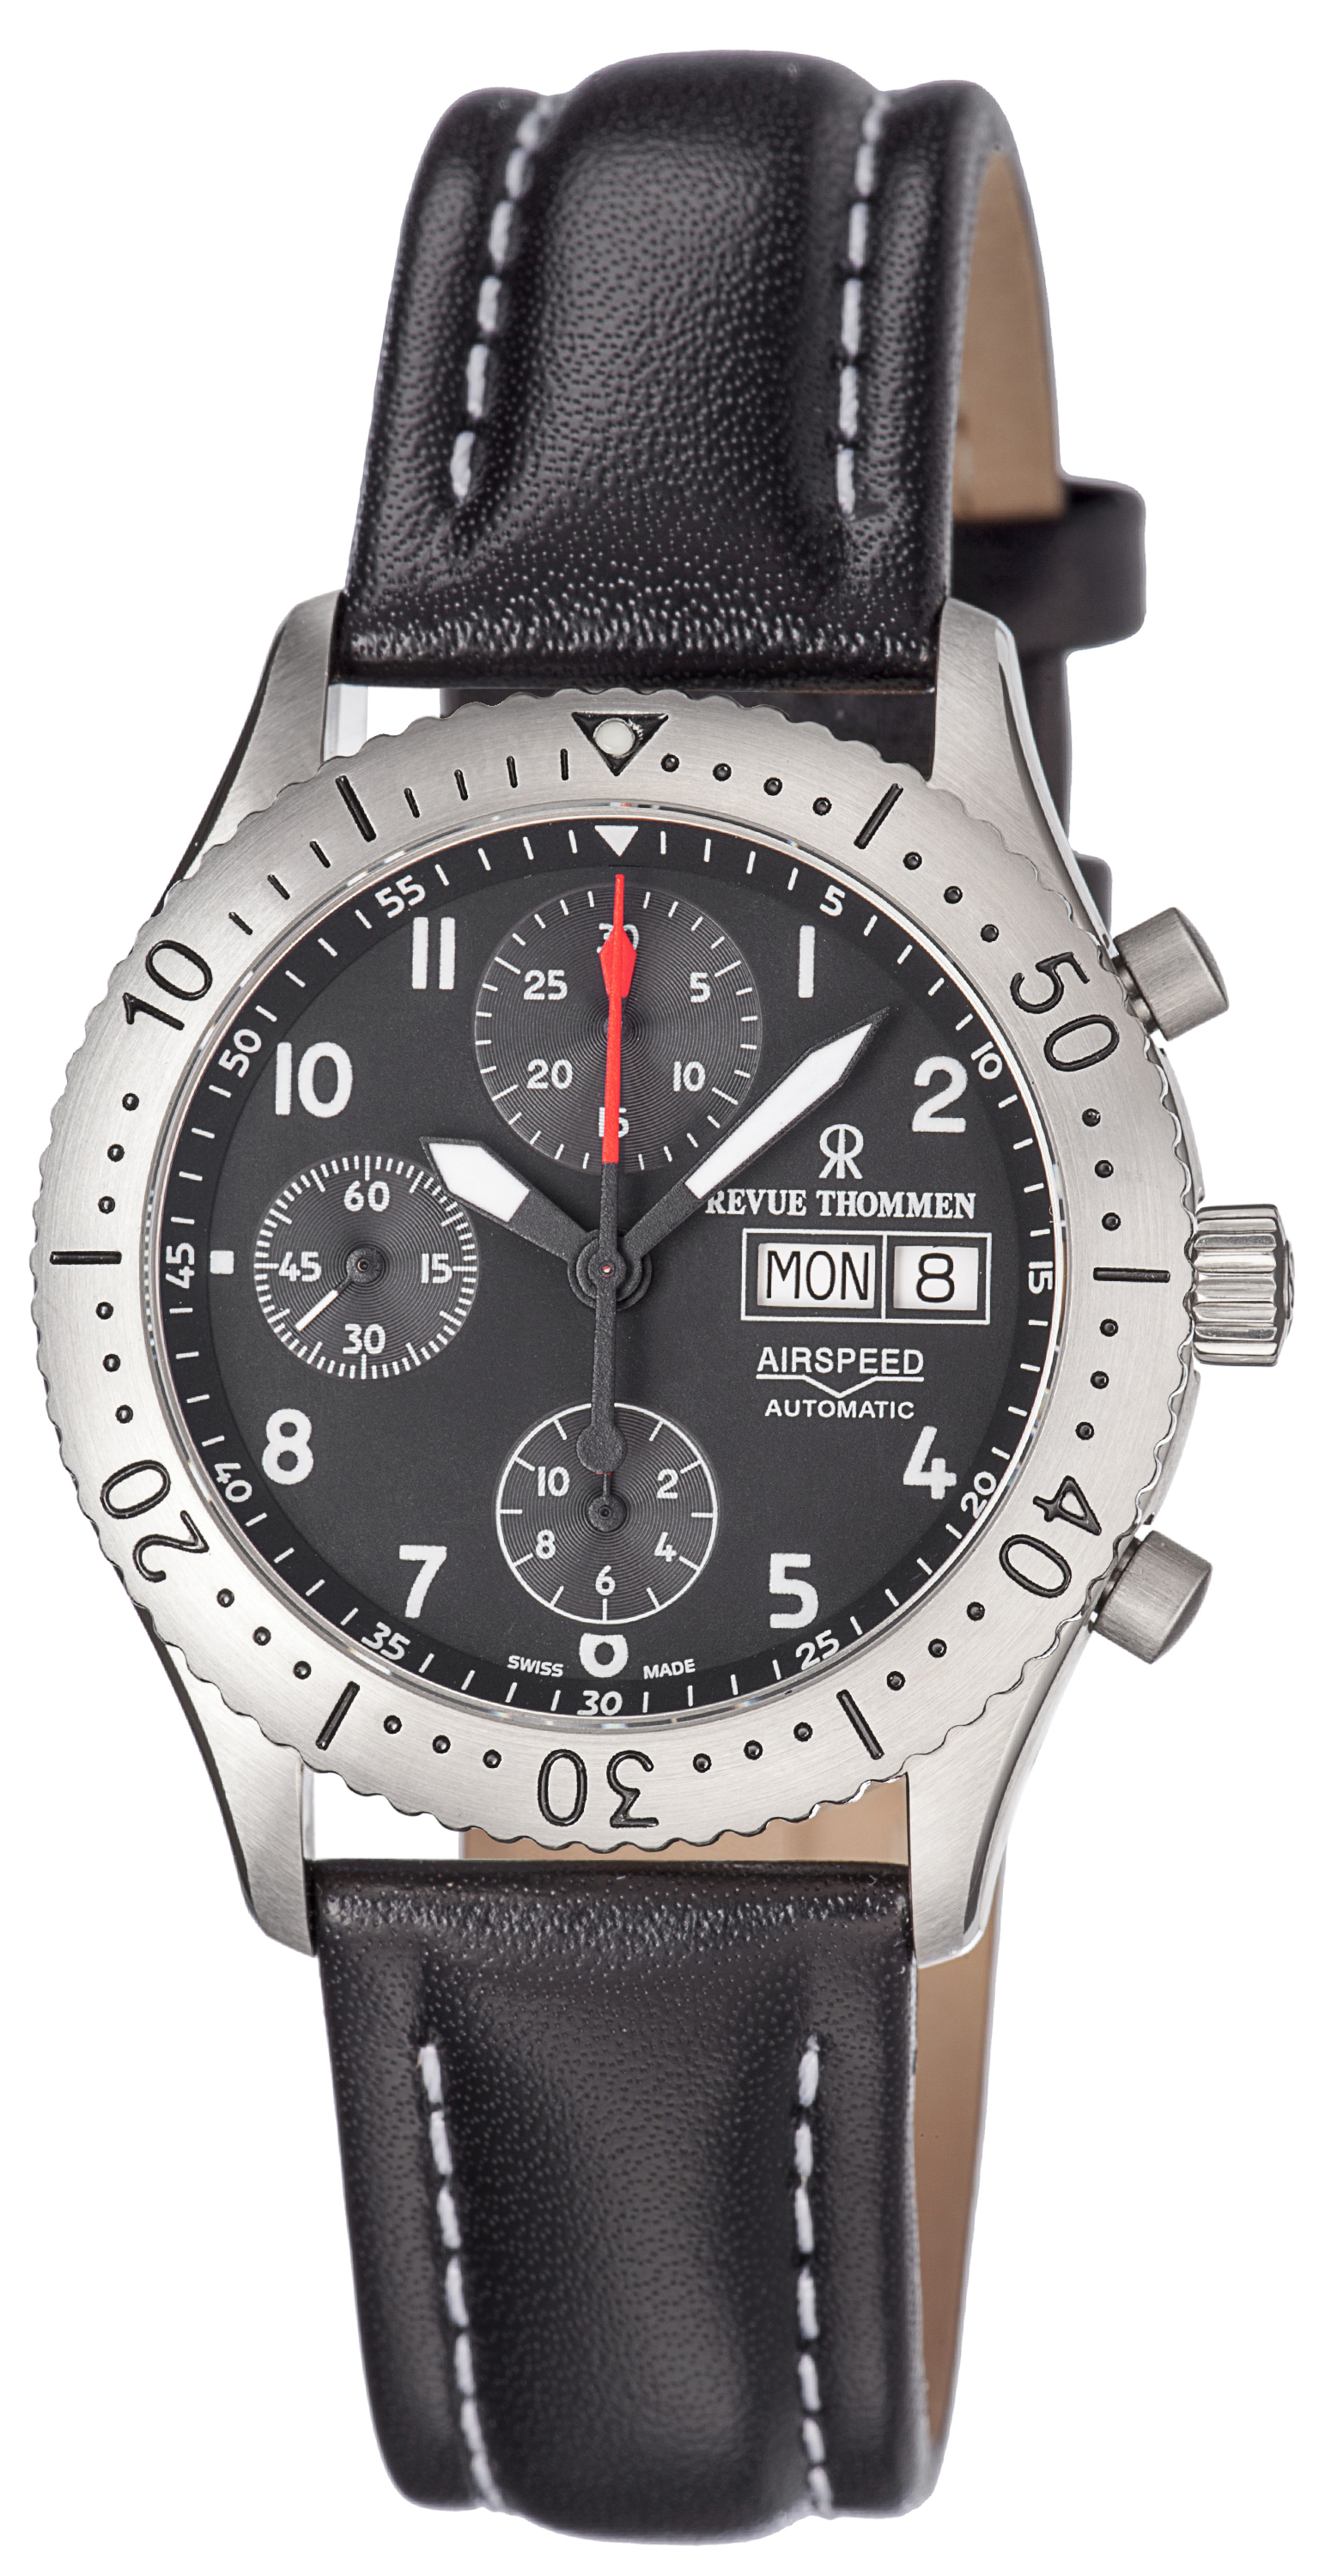 Image of Revue Thommen Airspeed Mens Watch Model 16007.6537